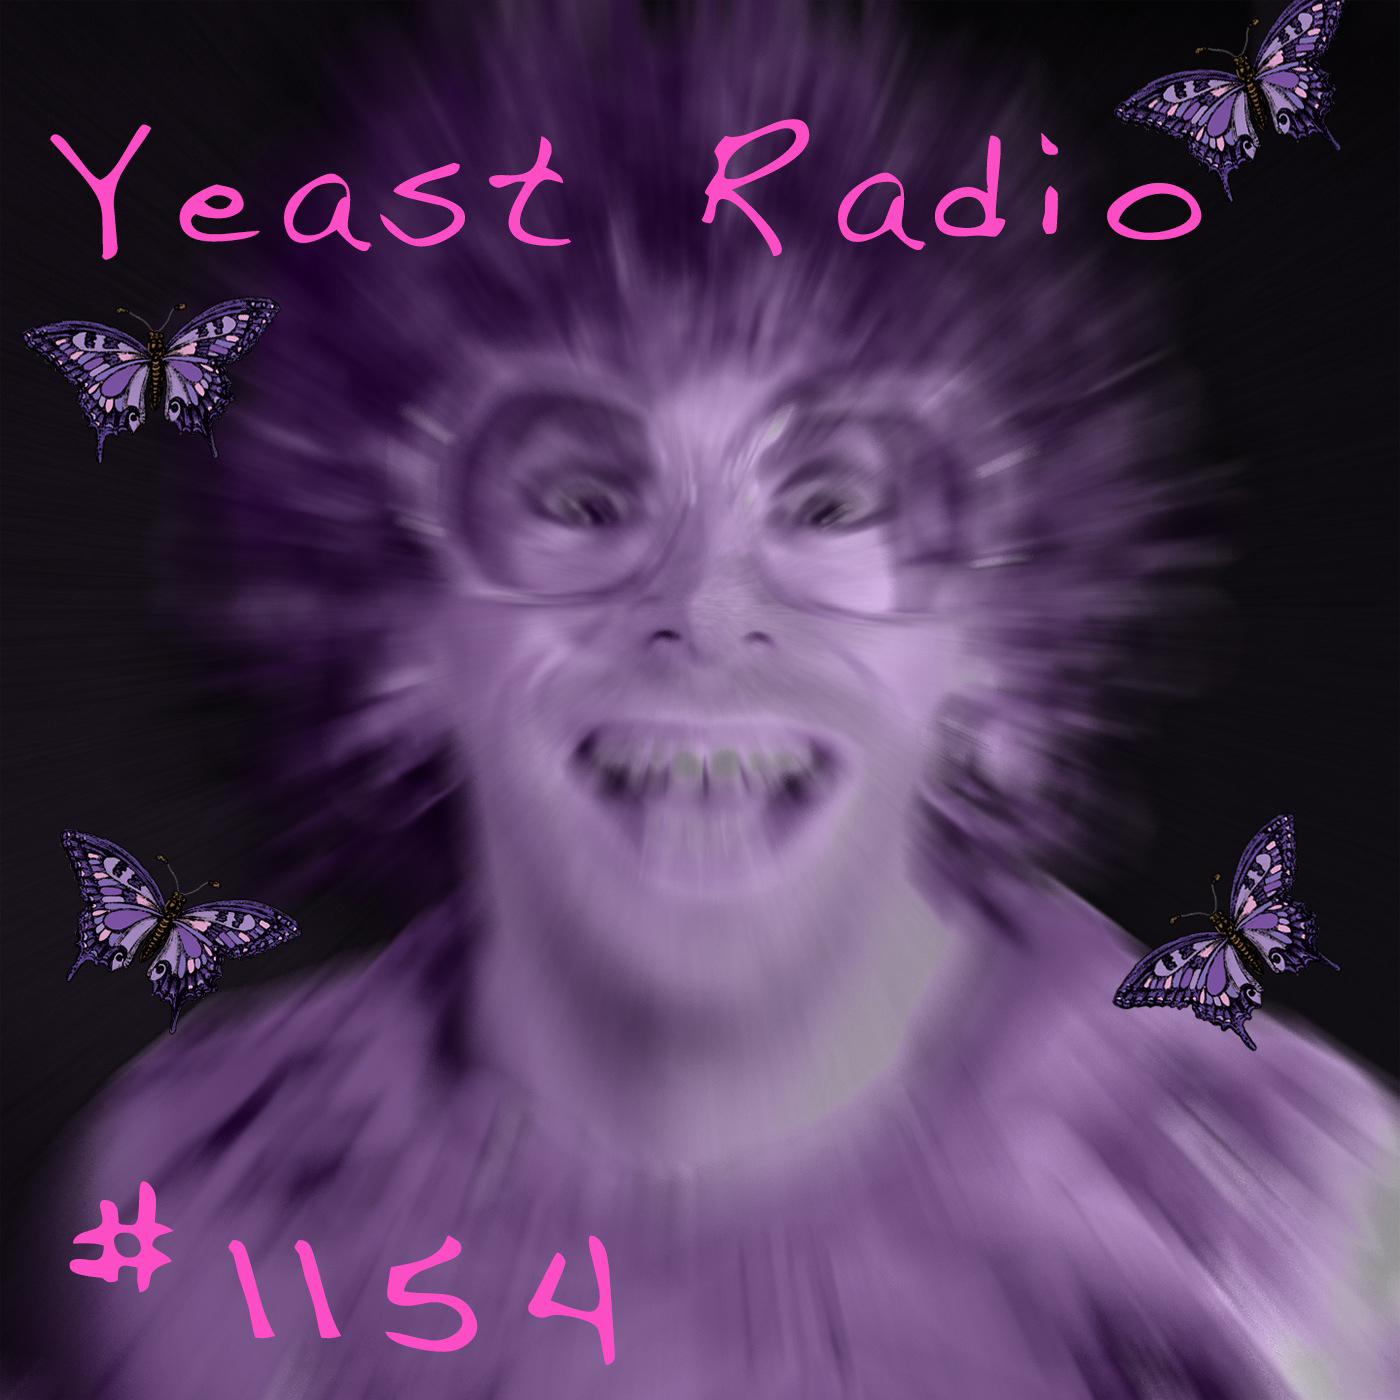 Yeast Radio 1154 Ceven and Madge Celebrate Fibromyalgia Awareness Year